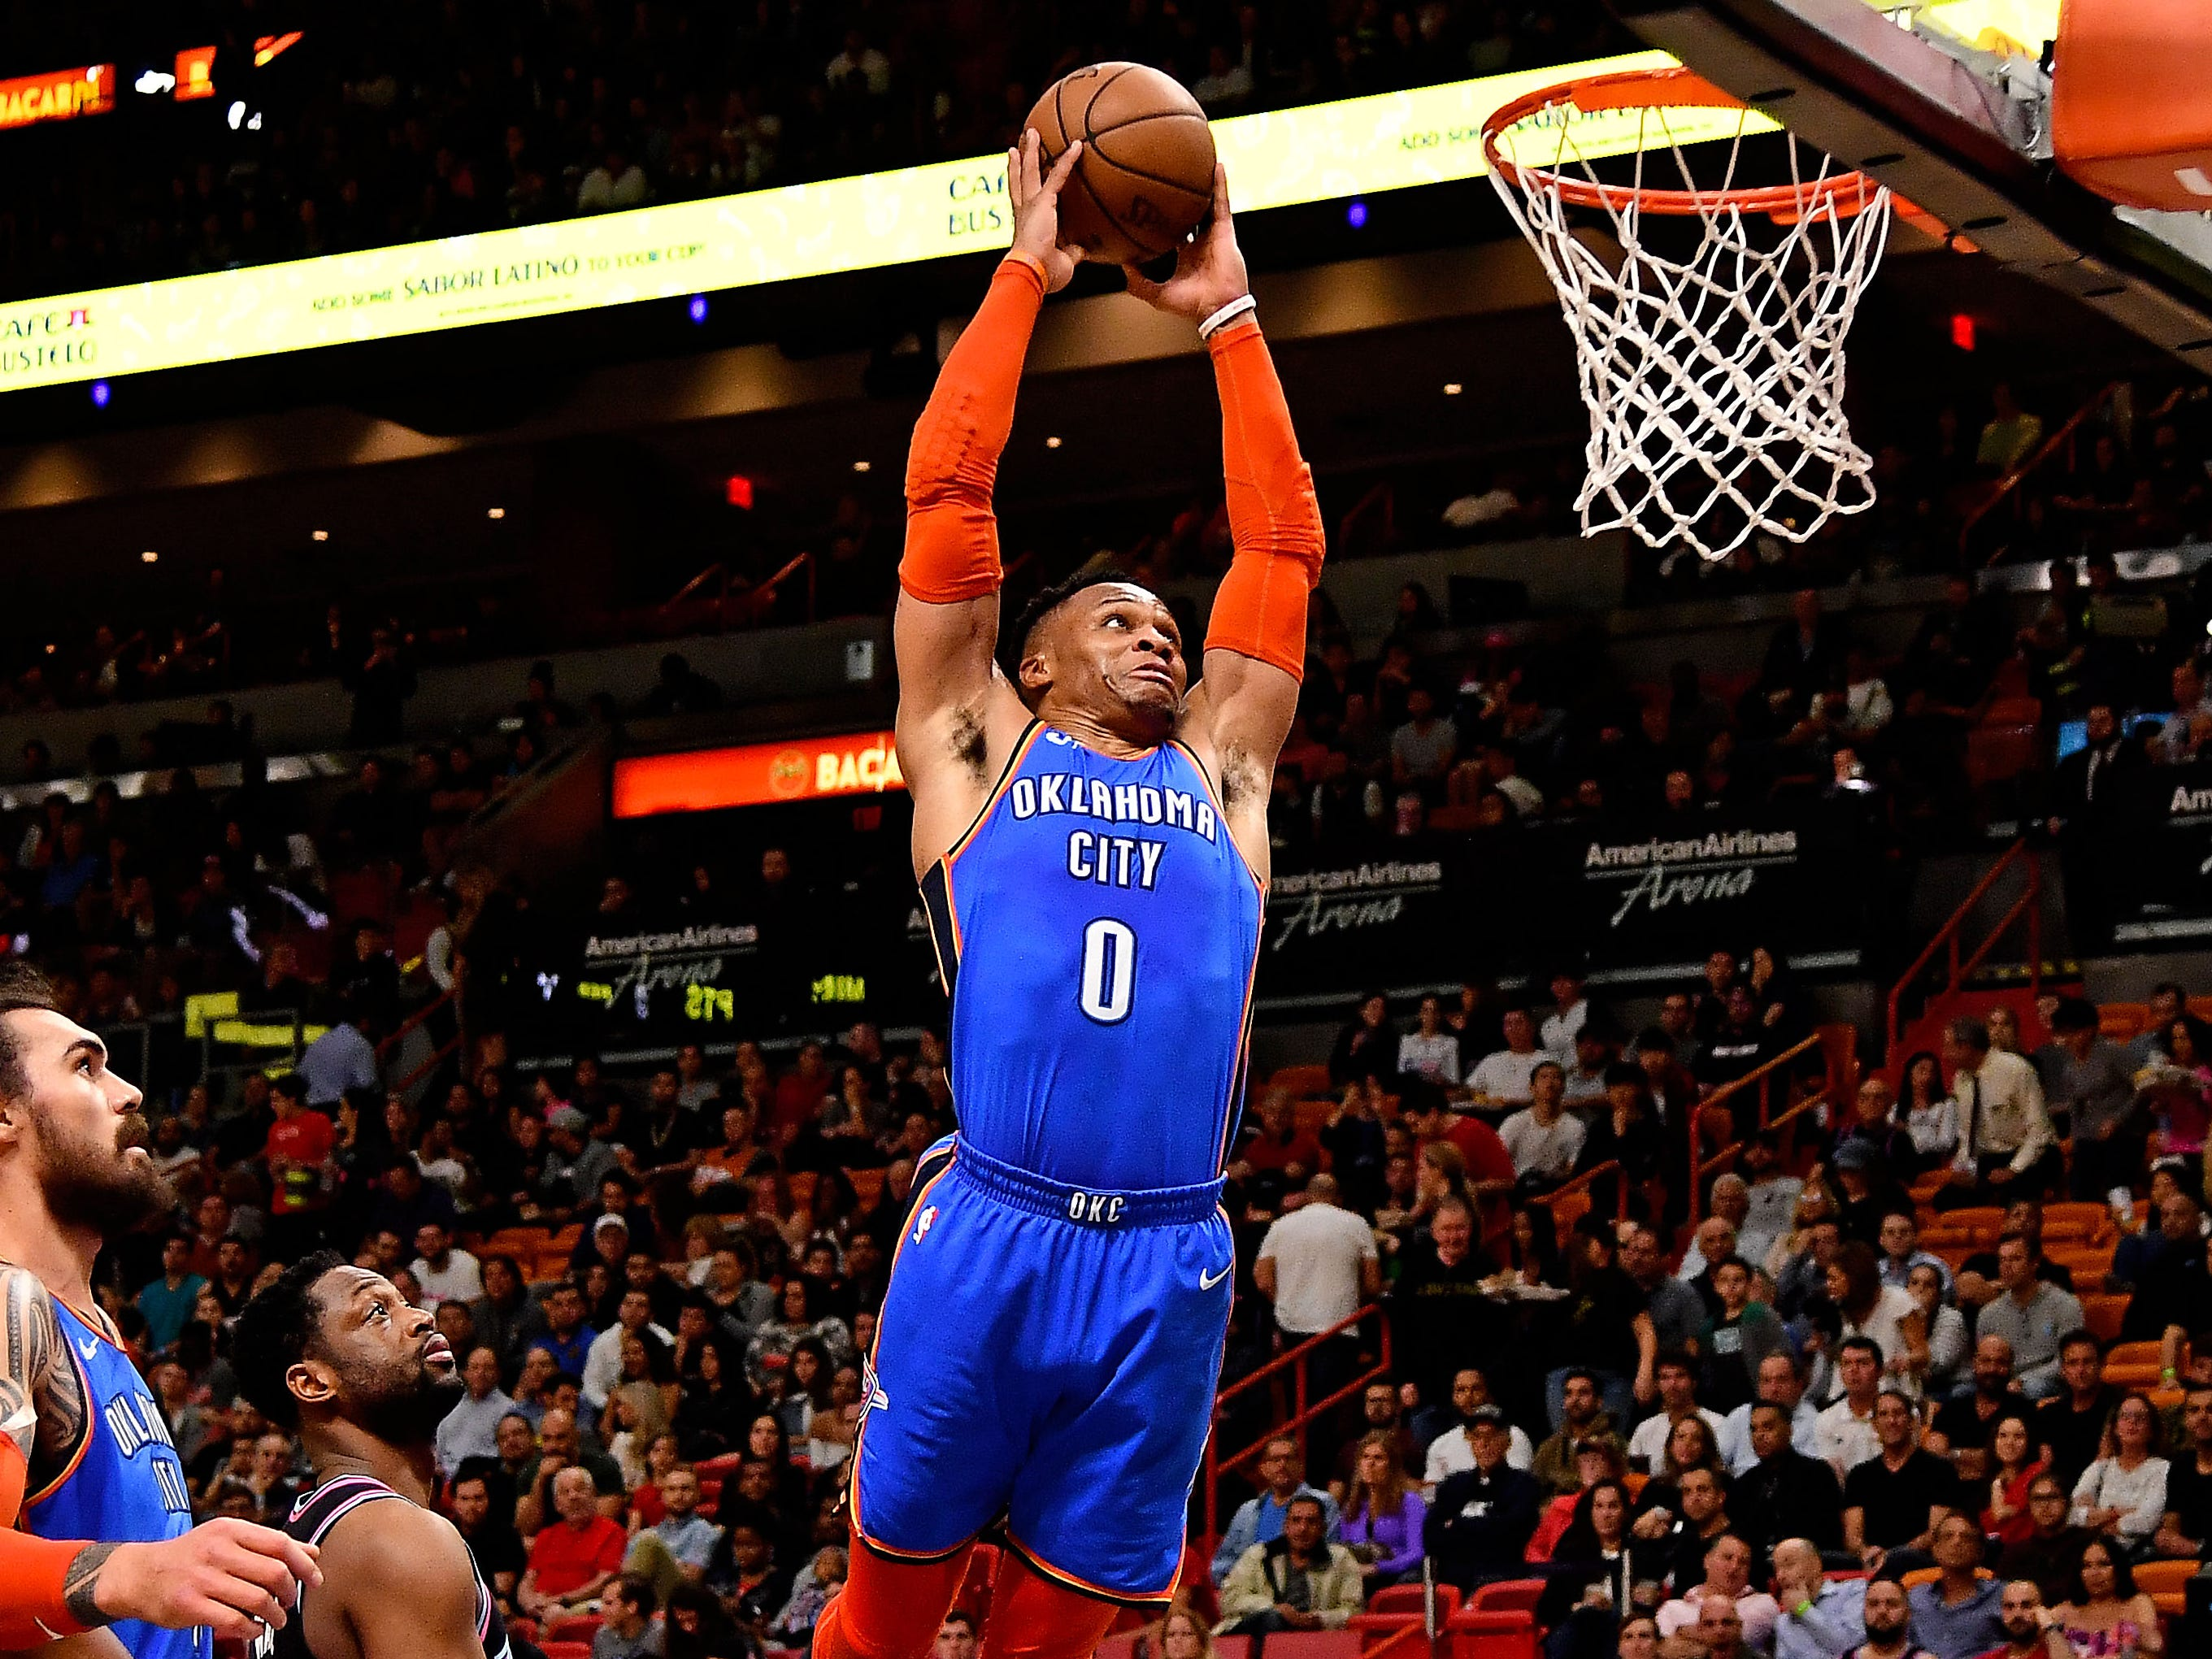 70. Russell Westbrook, Thunder (Feb. 1): 14 points, 14 assists, 12 rebounds in 118-102 win over Heat (18th of season).